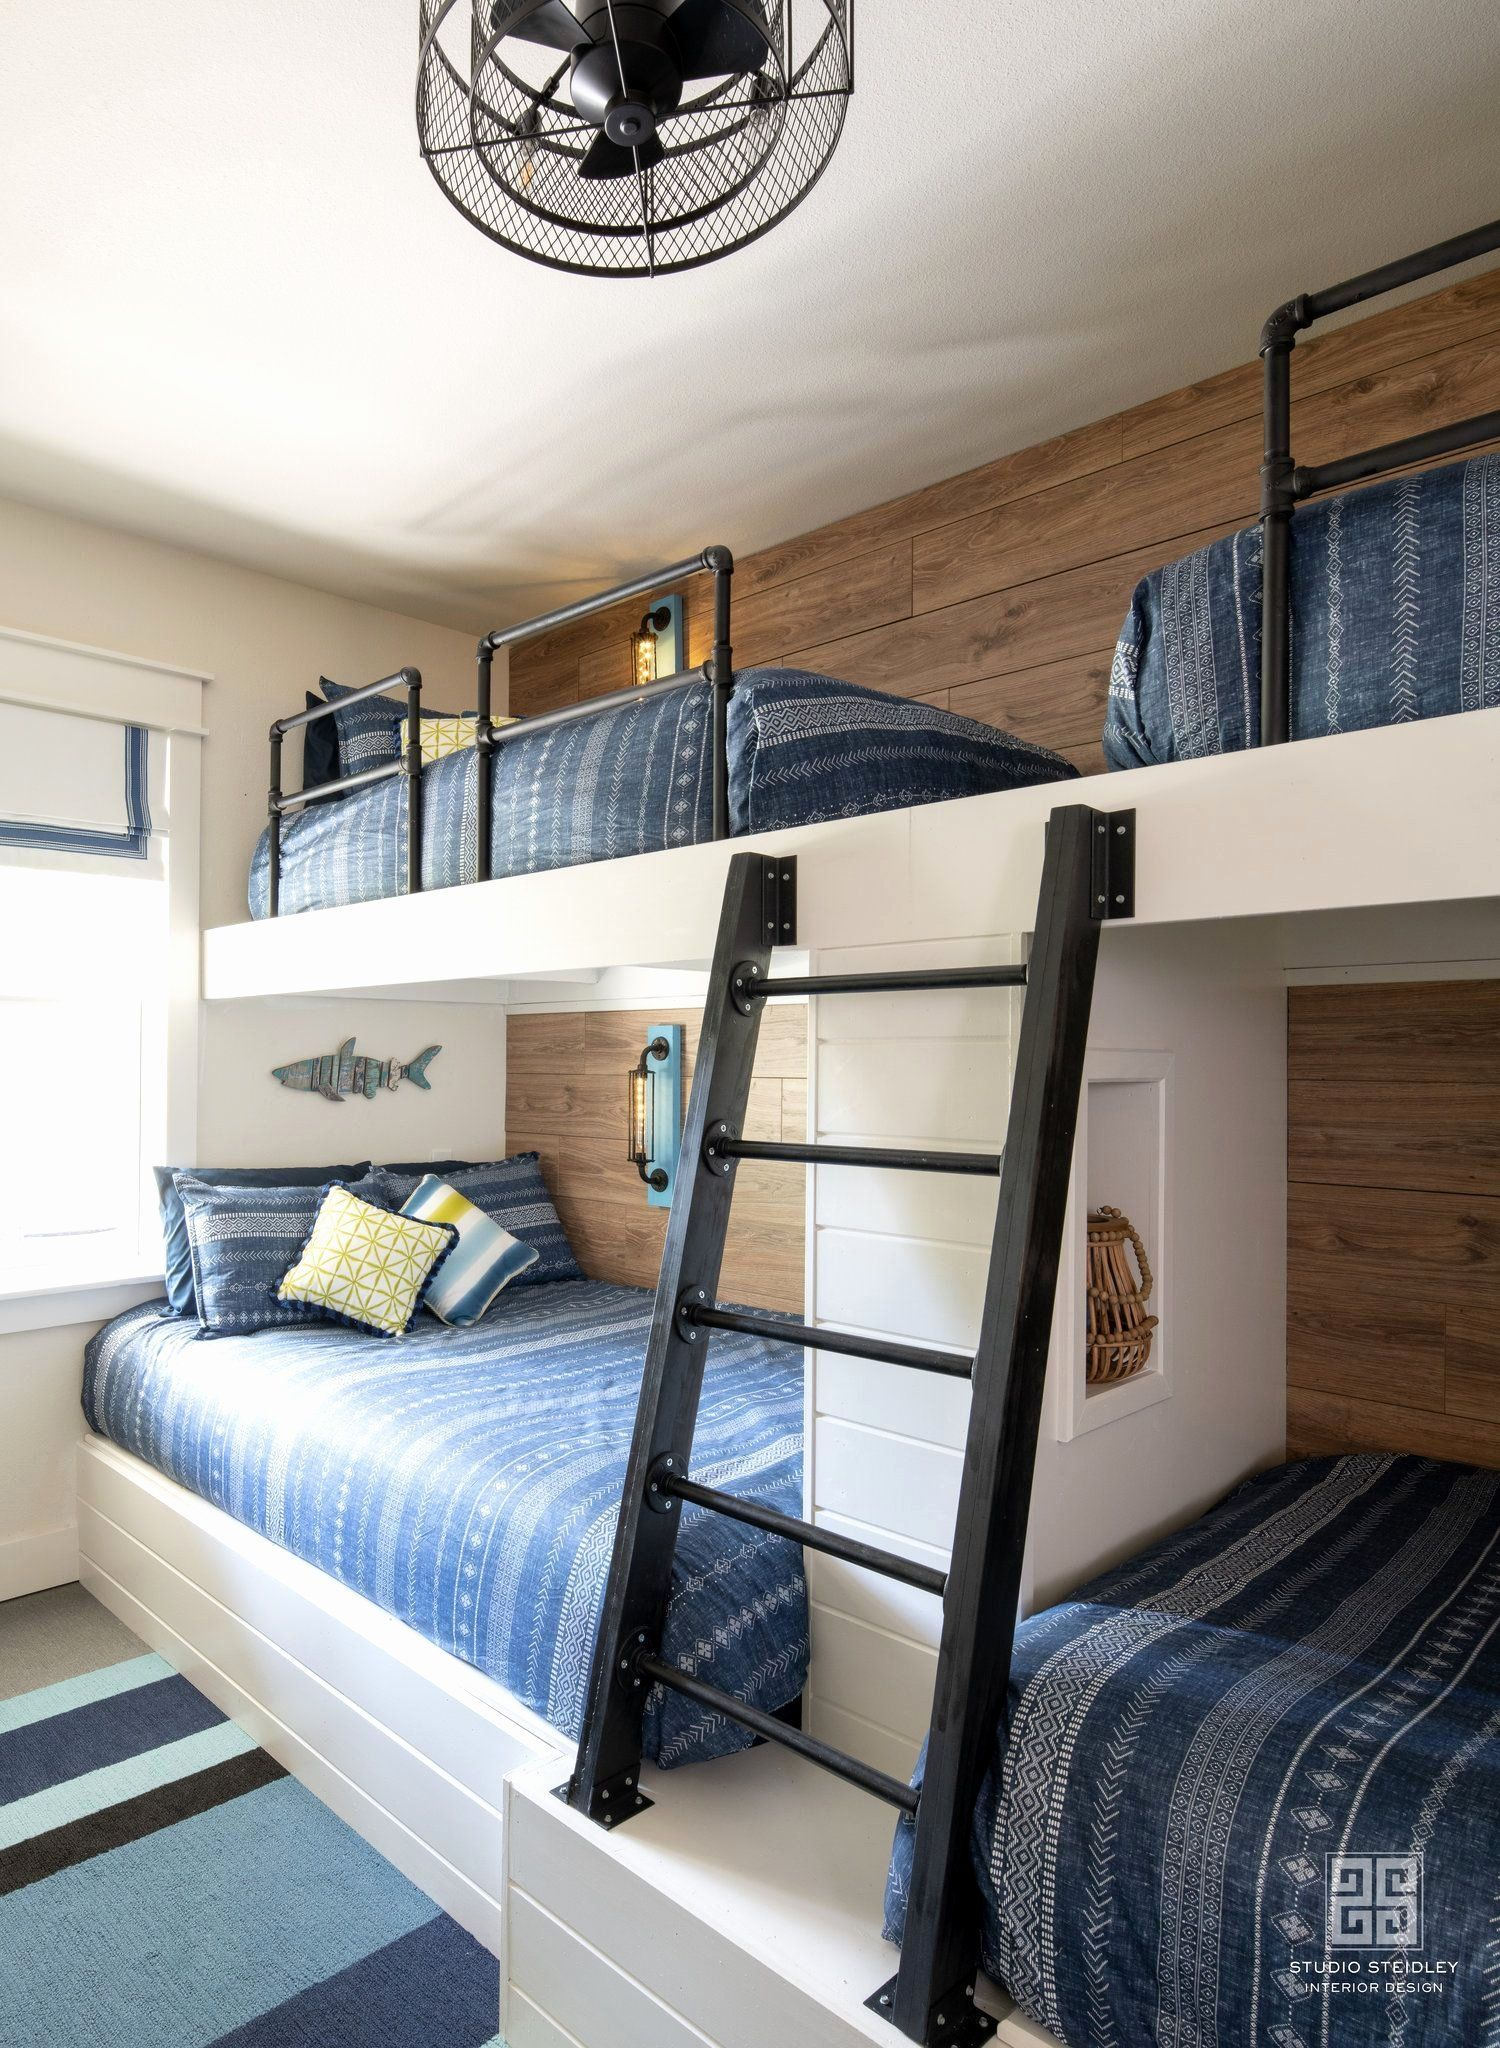 Small Bedroom With Bunk Beds Awesome Bunkbed Room Ideas For Small Bedrooms Bunkb Awesome Bedroom Bedrooms Beds Bunk Beds Wooden Bunk Beds Kids Bunk Beds